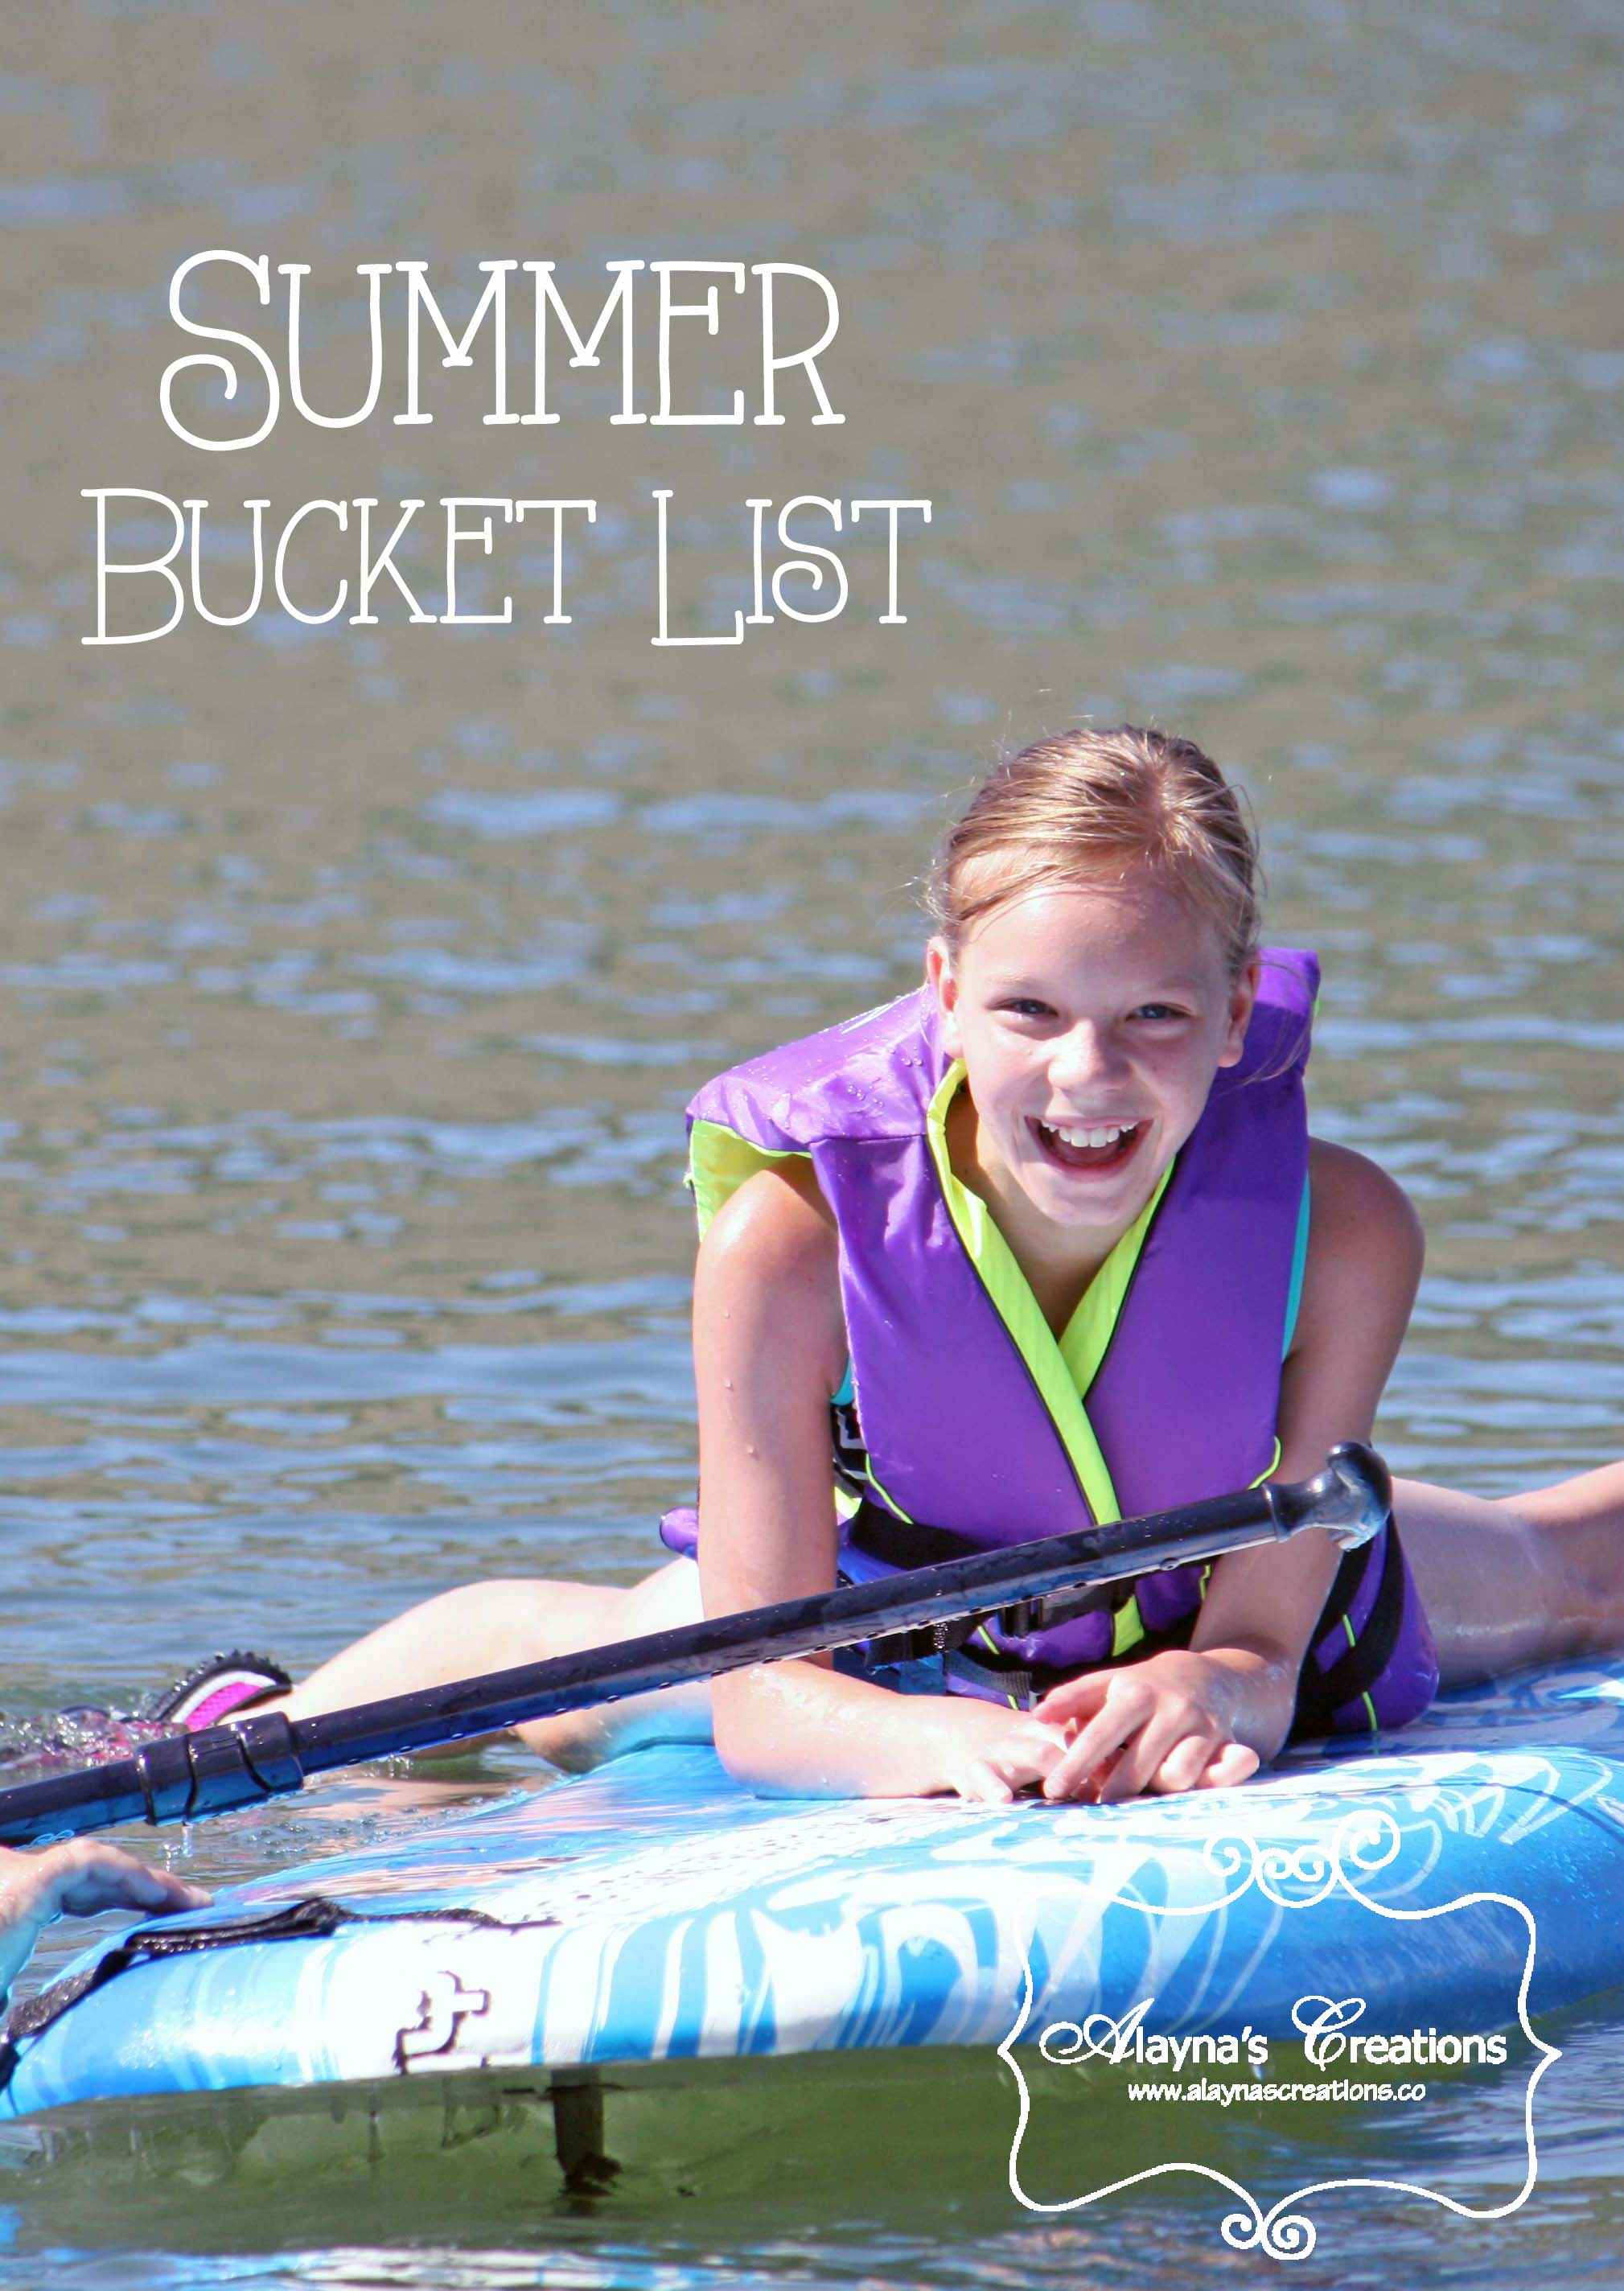 Summer Bucket List 2016 Fun ideas for getting out and enjoying summer with the kids AlaynasCreations